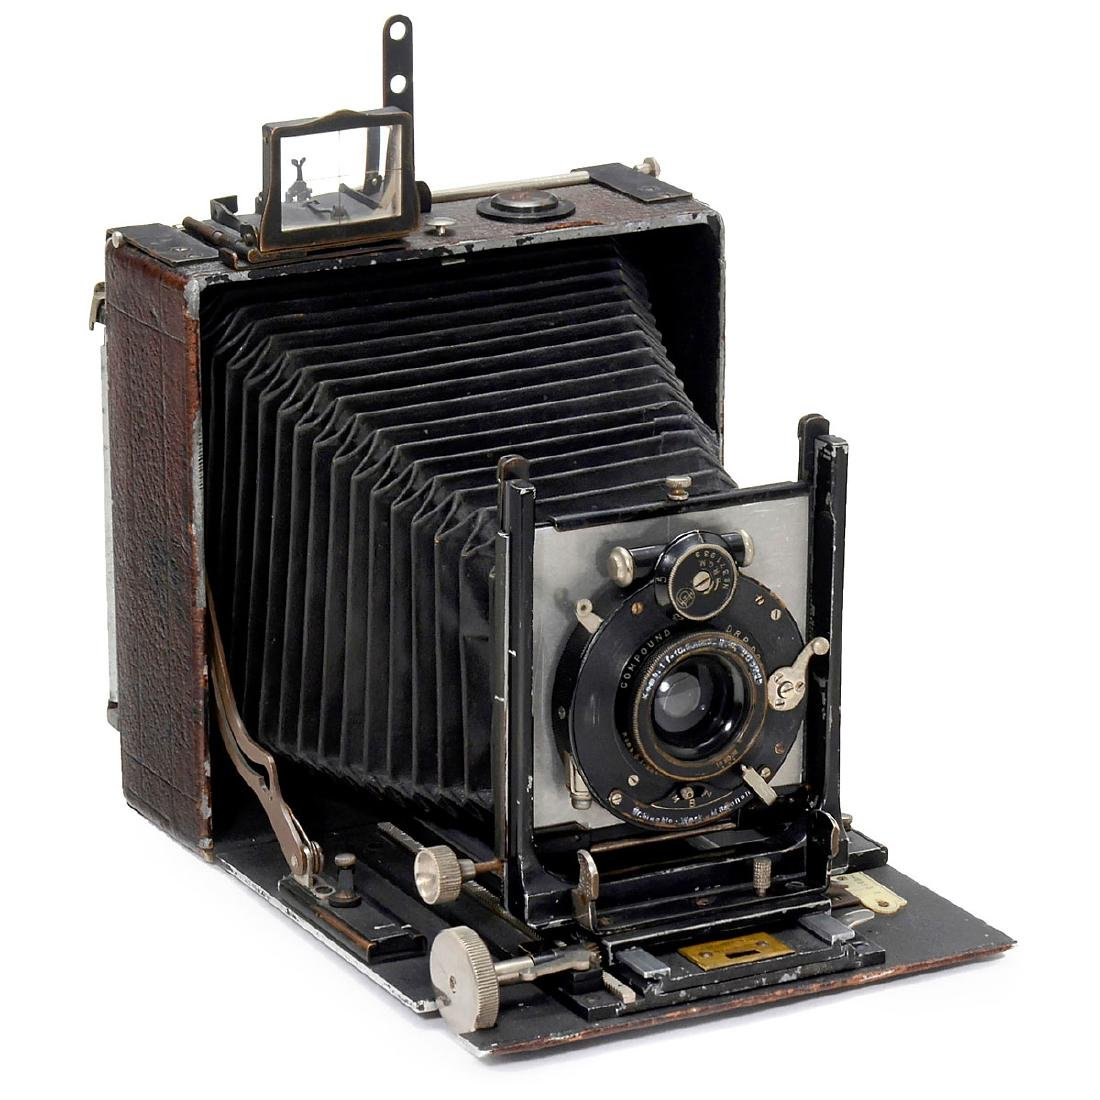 Dr. Staeble's Professional Hand-Camera, c. 1925